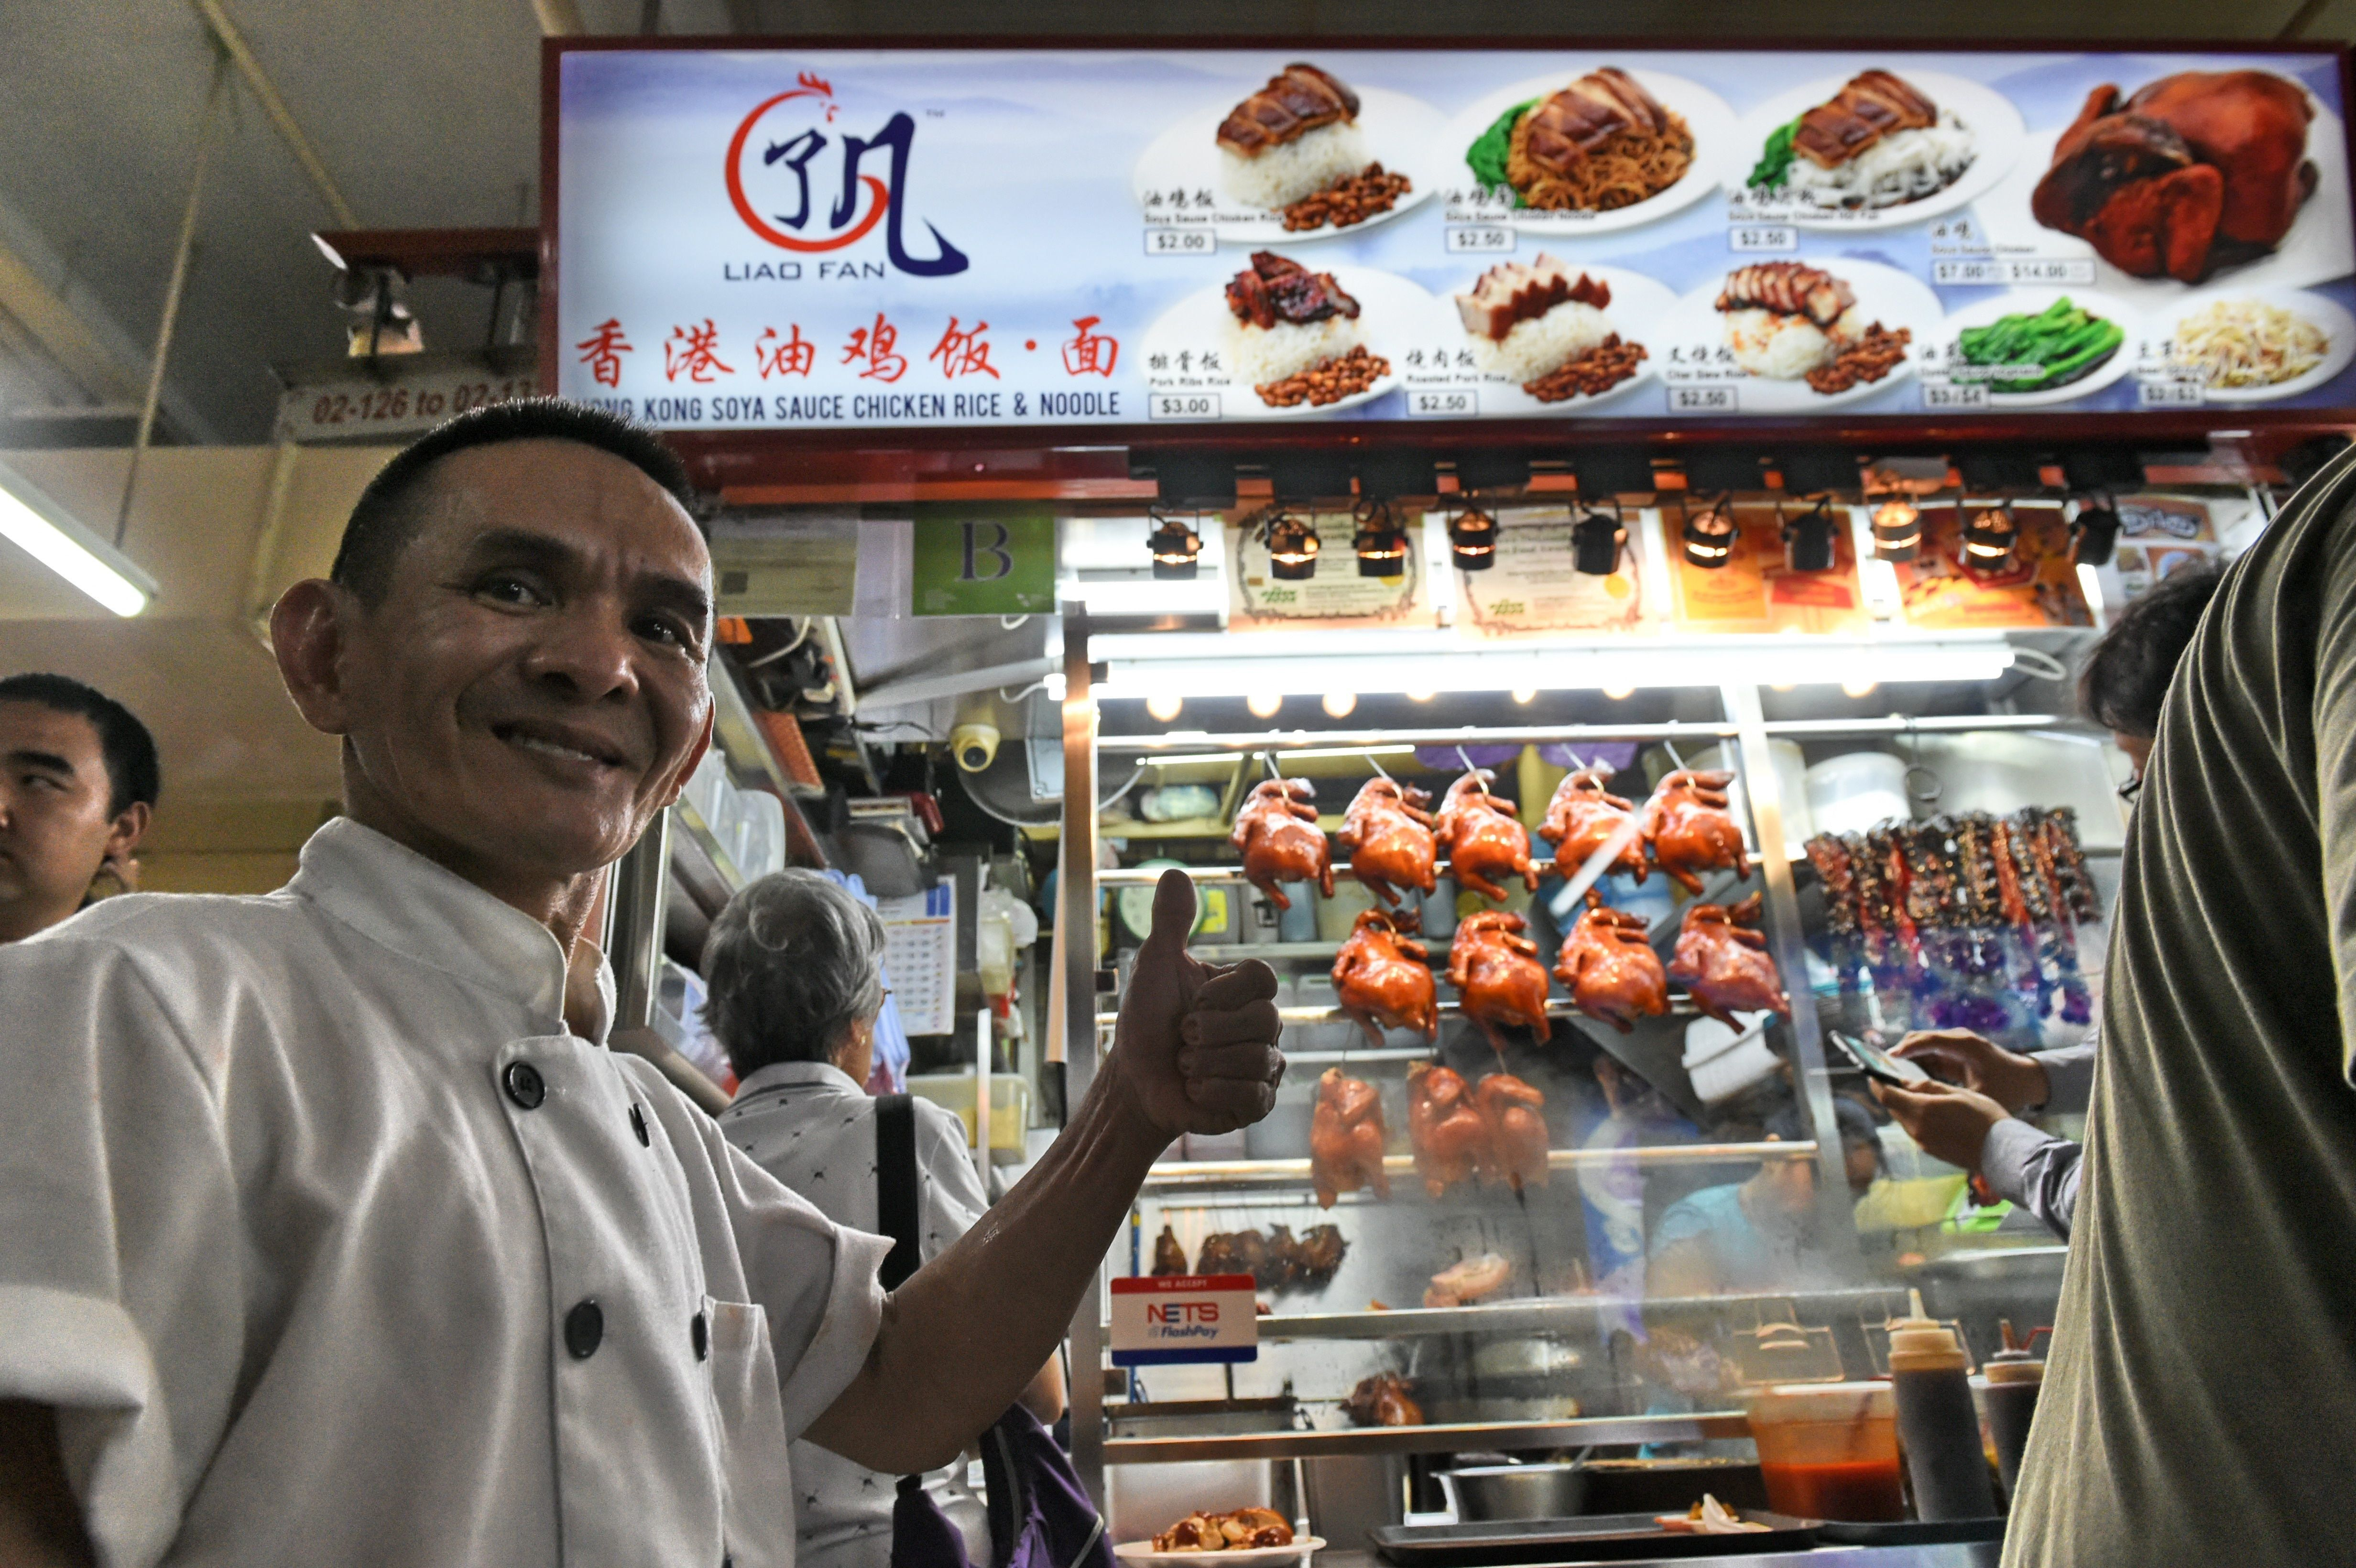 Singaporean chef Chan Hon Meng poses infront of his Hong Kong Soya Sauce Chicken Rice and Noodle stall in Singapore on July 2